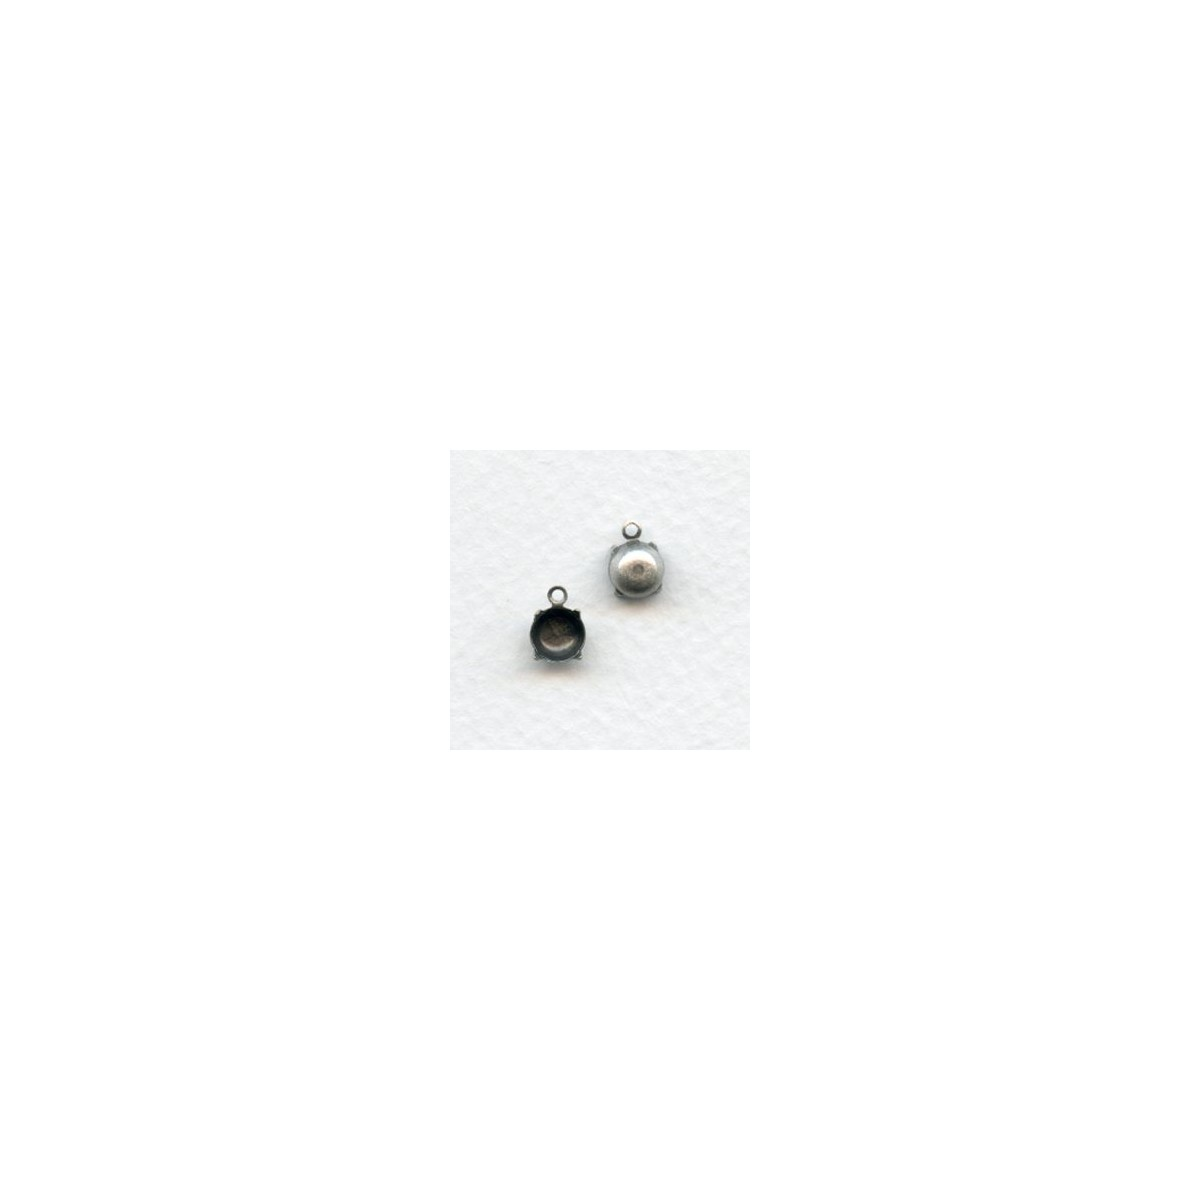 Round 6mm Settings 1 Loop Closed Back Oxidized Silver